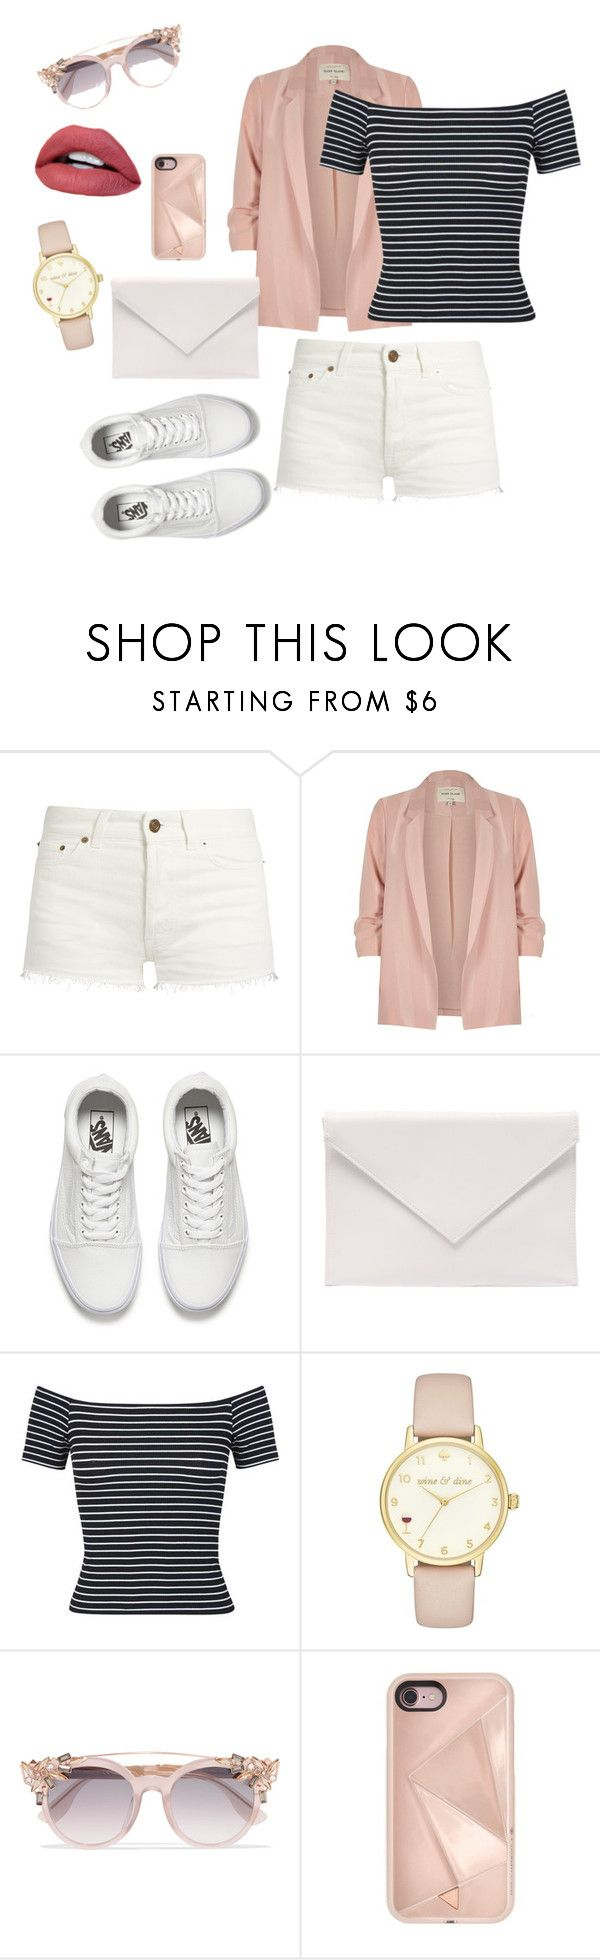 """Semi Casual Look"" by harshal-singhai ❤ liked on Polyvore featuring Yves Saint Laurent, River Island, Vans, Verali, Miss Selfridge, Kate Spade, Jimmy Choo and Rebecca Minkoff"